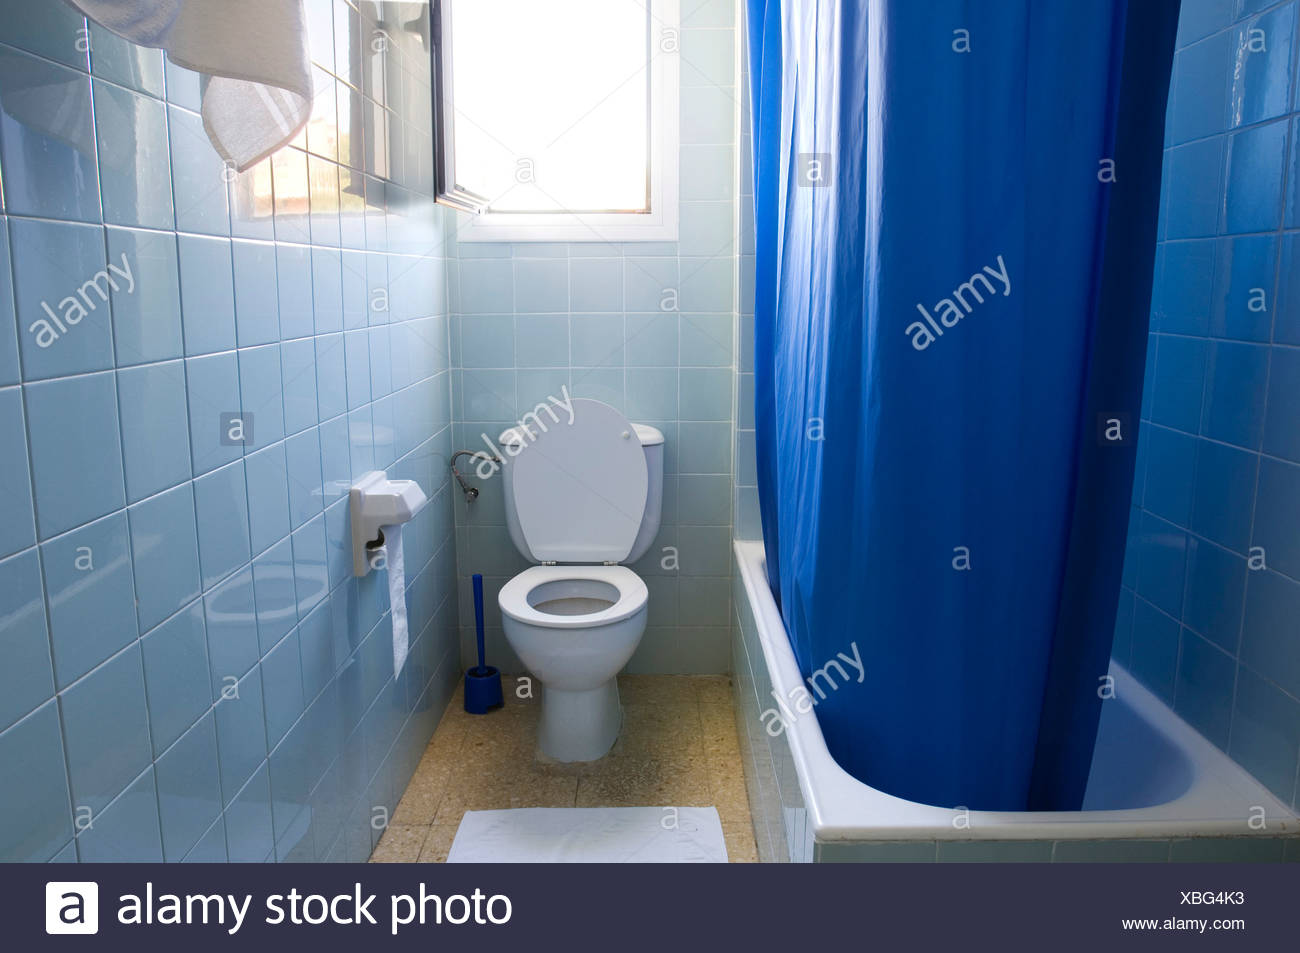 Bath, shower curtain and toilet in a bathroom Stock Photo: 282482007 ...